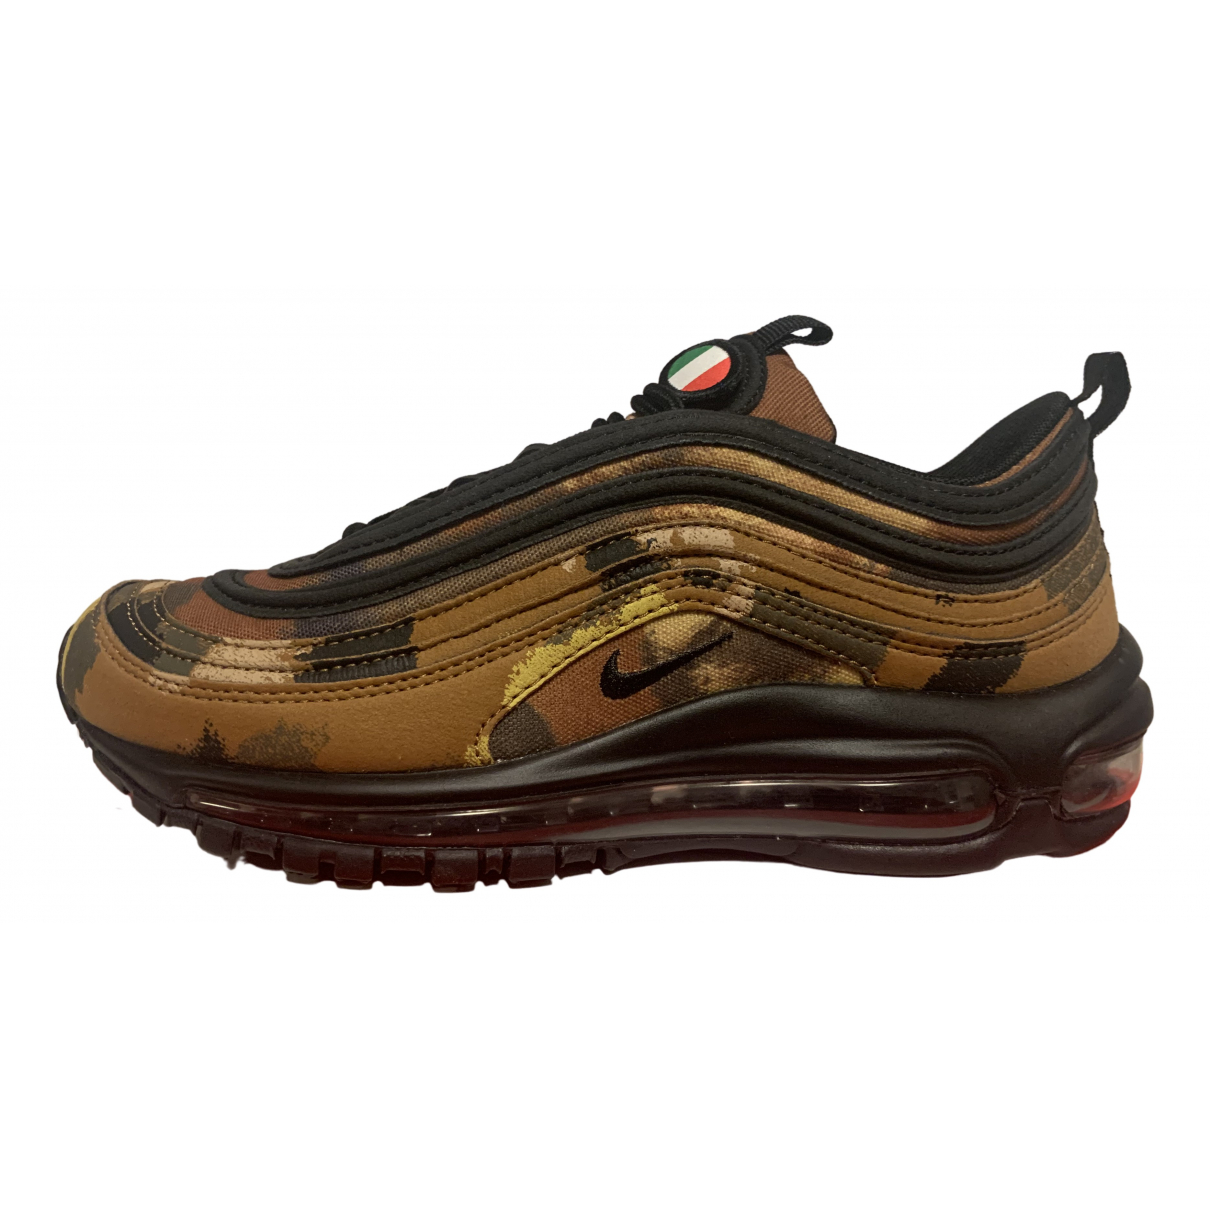 Nike - Baskets Air Max 97 pour femme en suede - multicolore